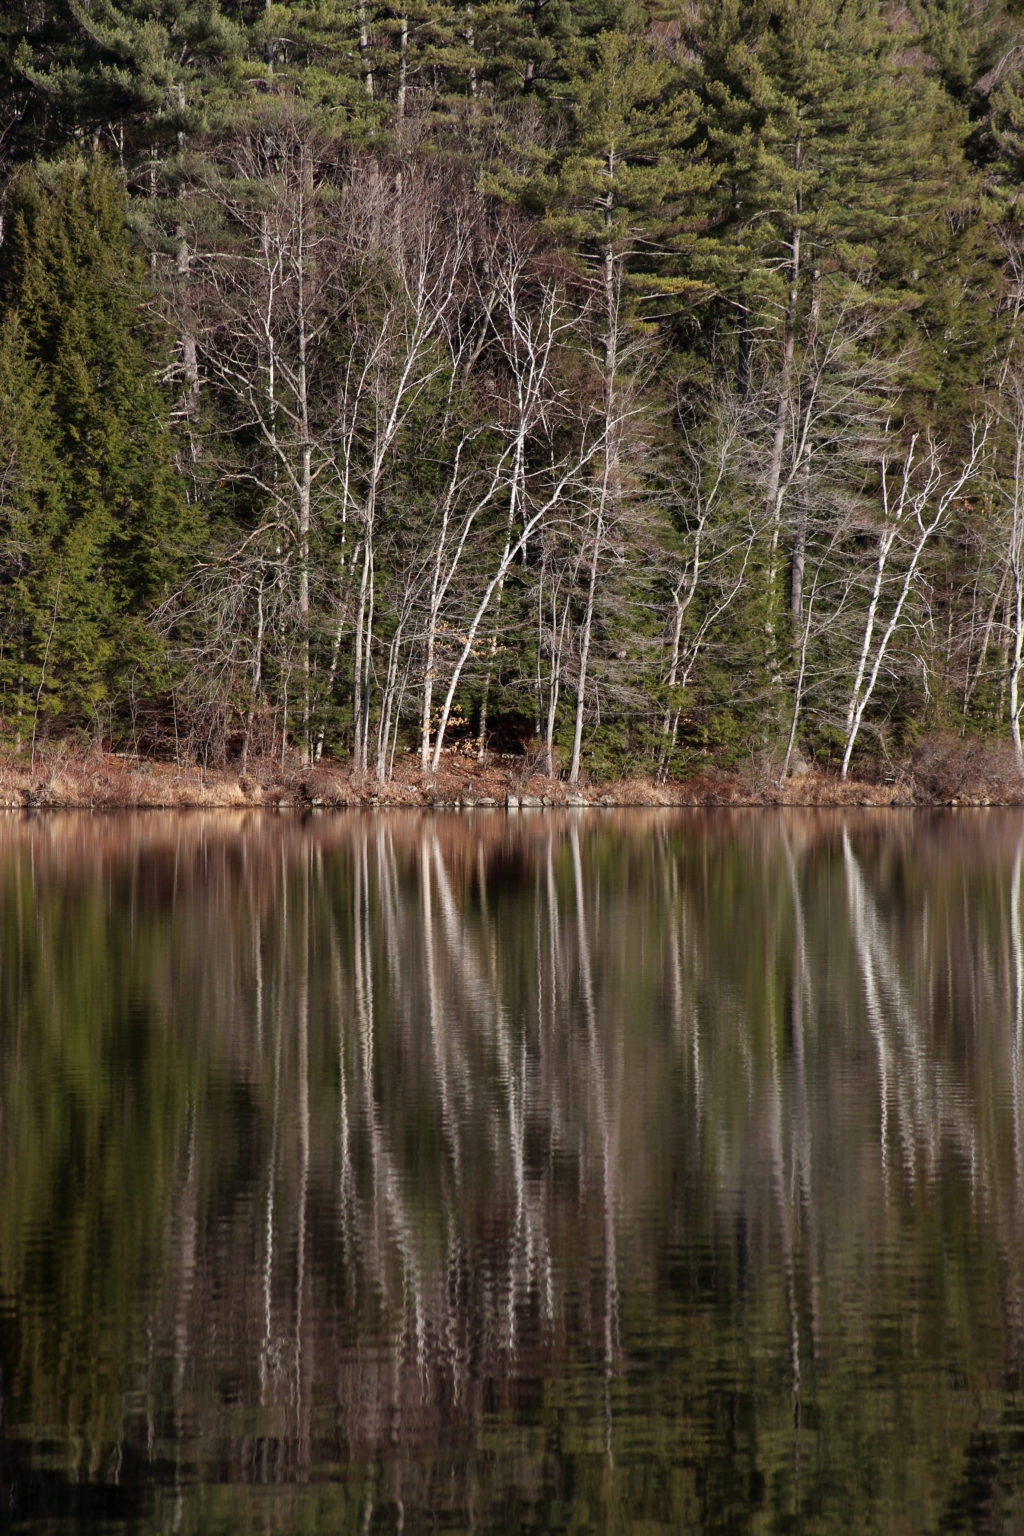 Bare Trees Reflected in Still Pond